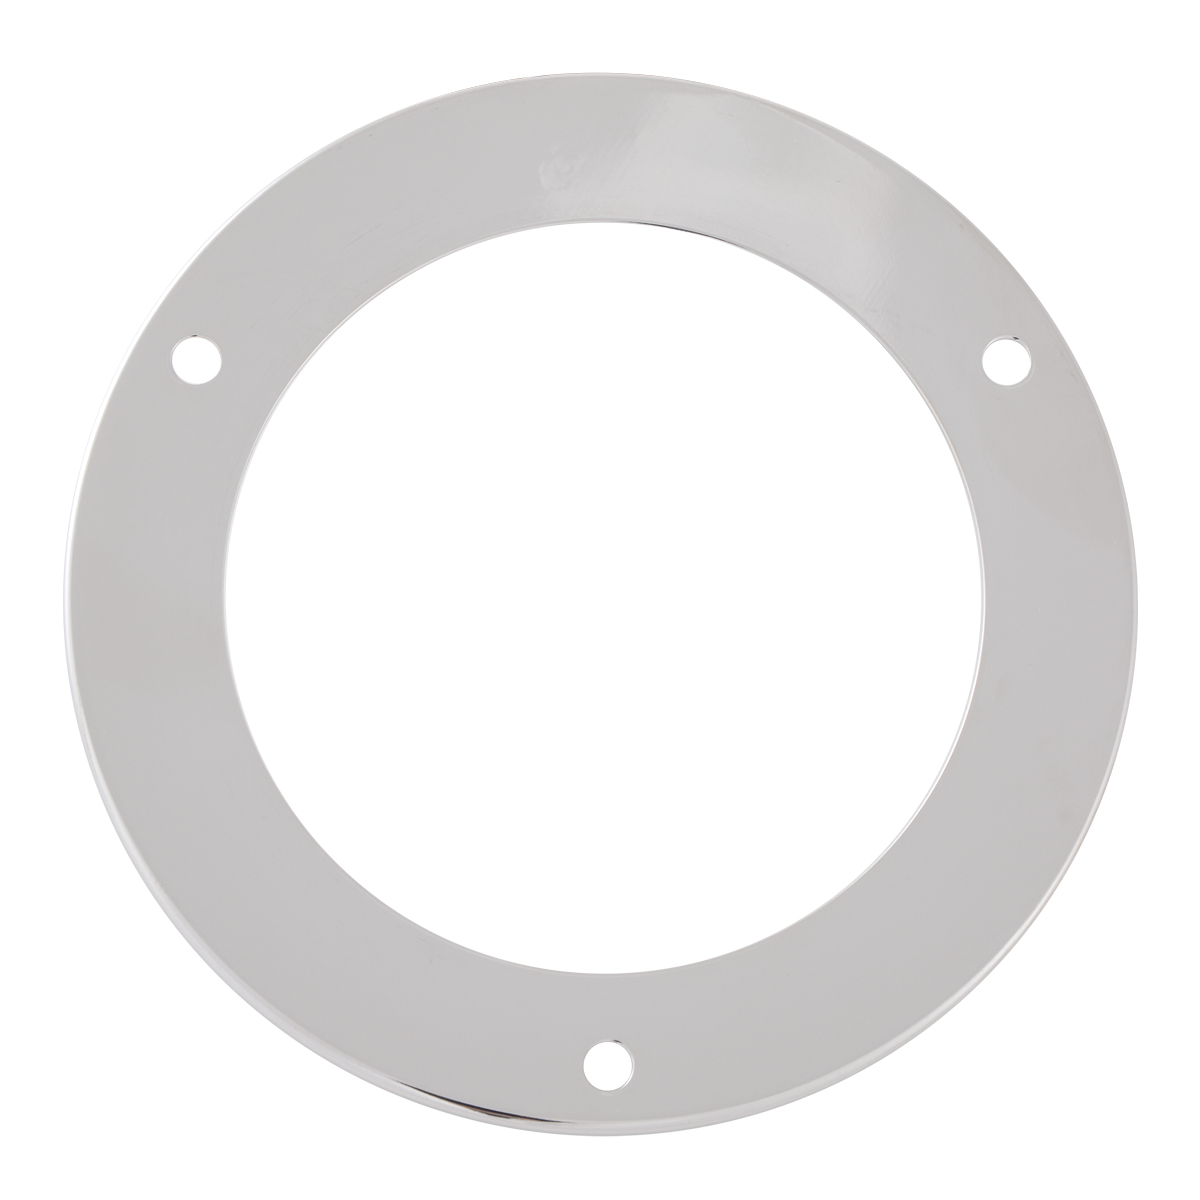 "87144 Stainless Steel Security Ring for 4"" Round Light"